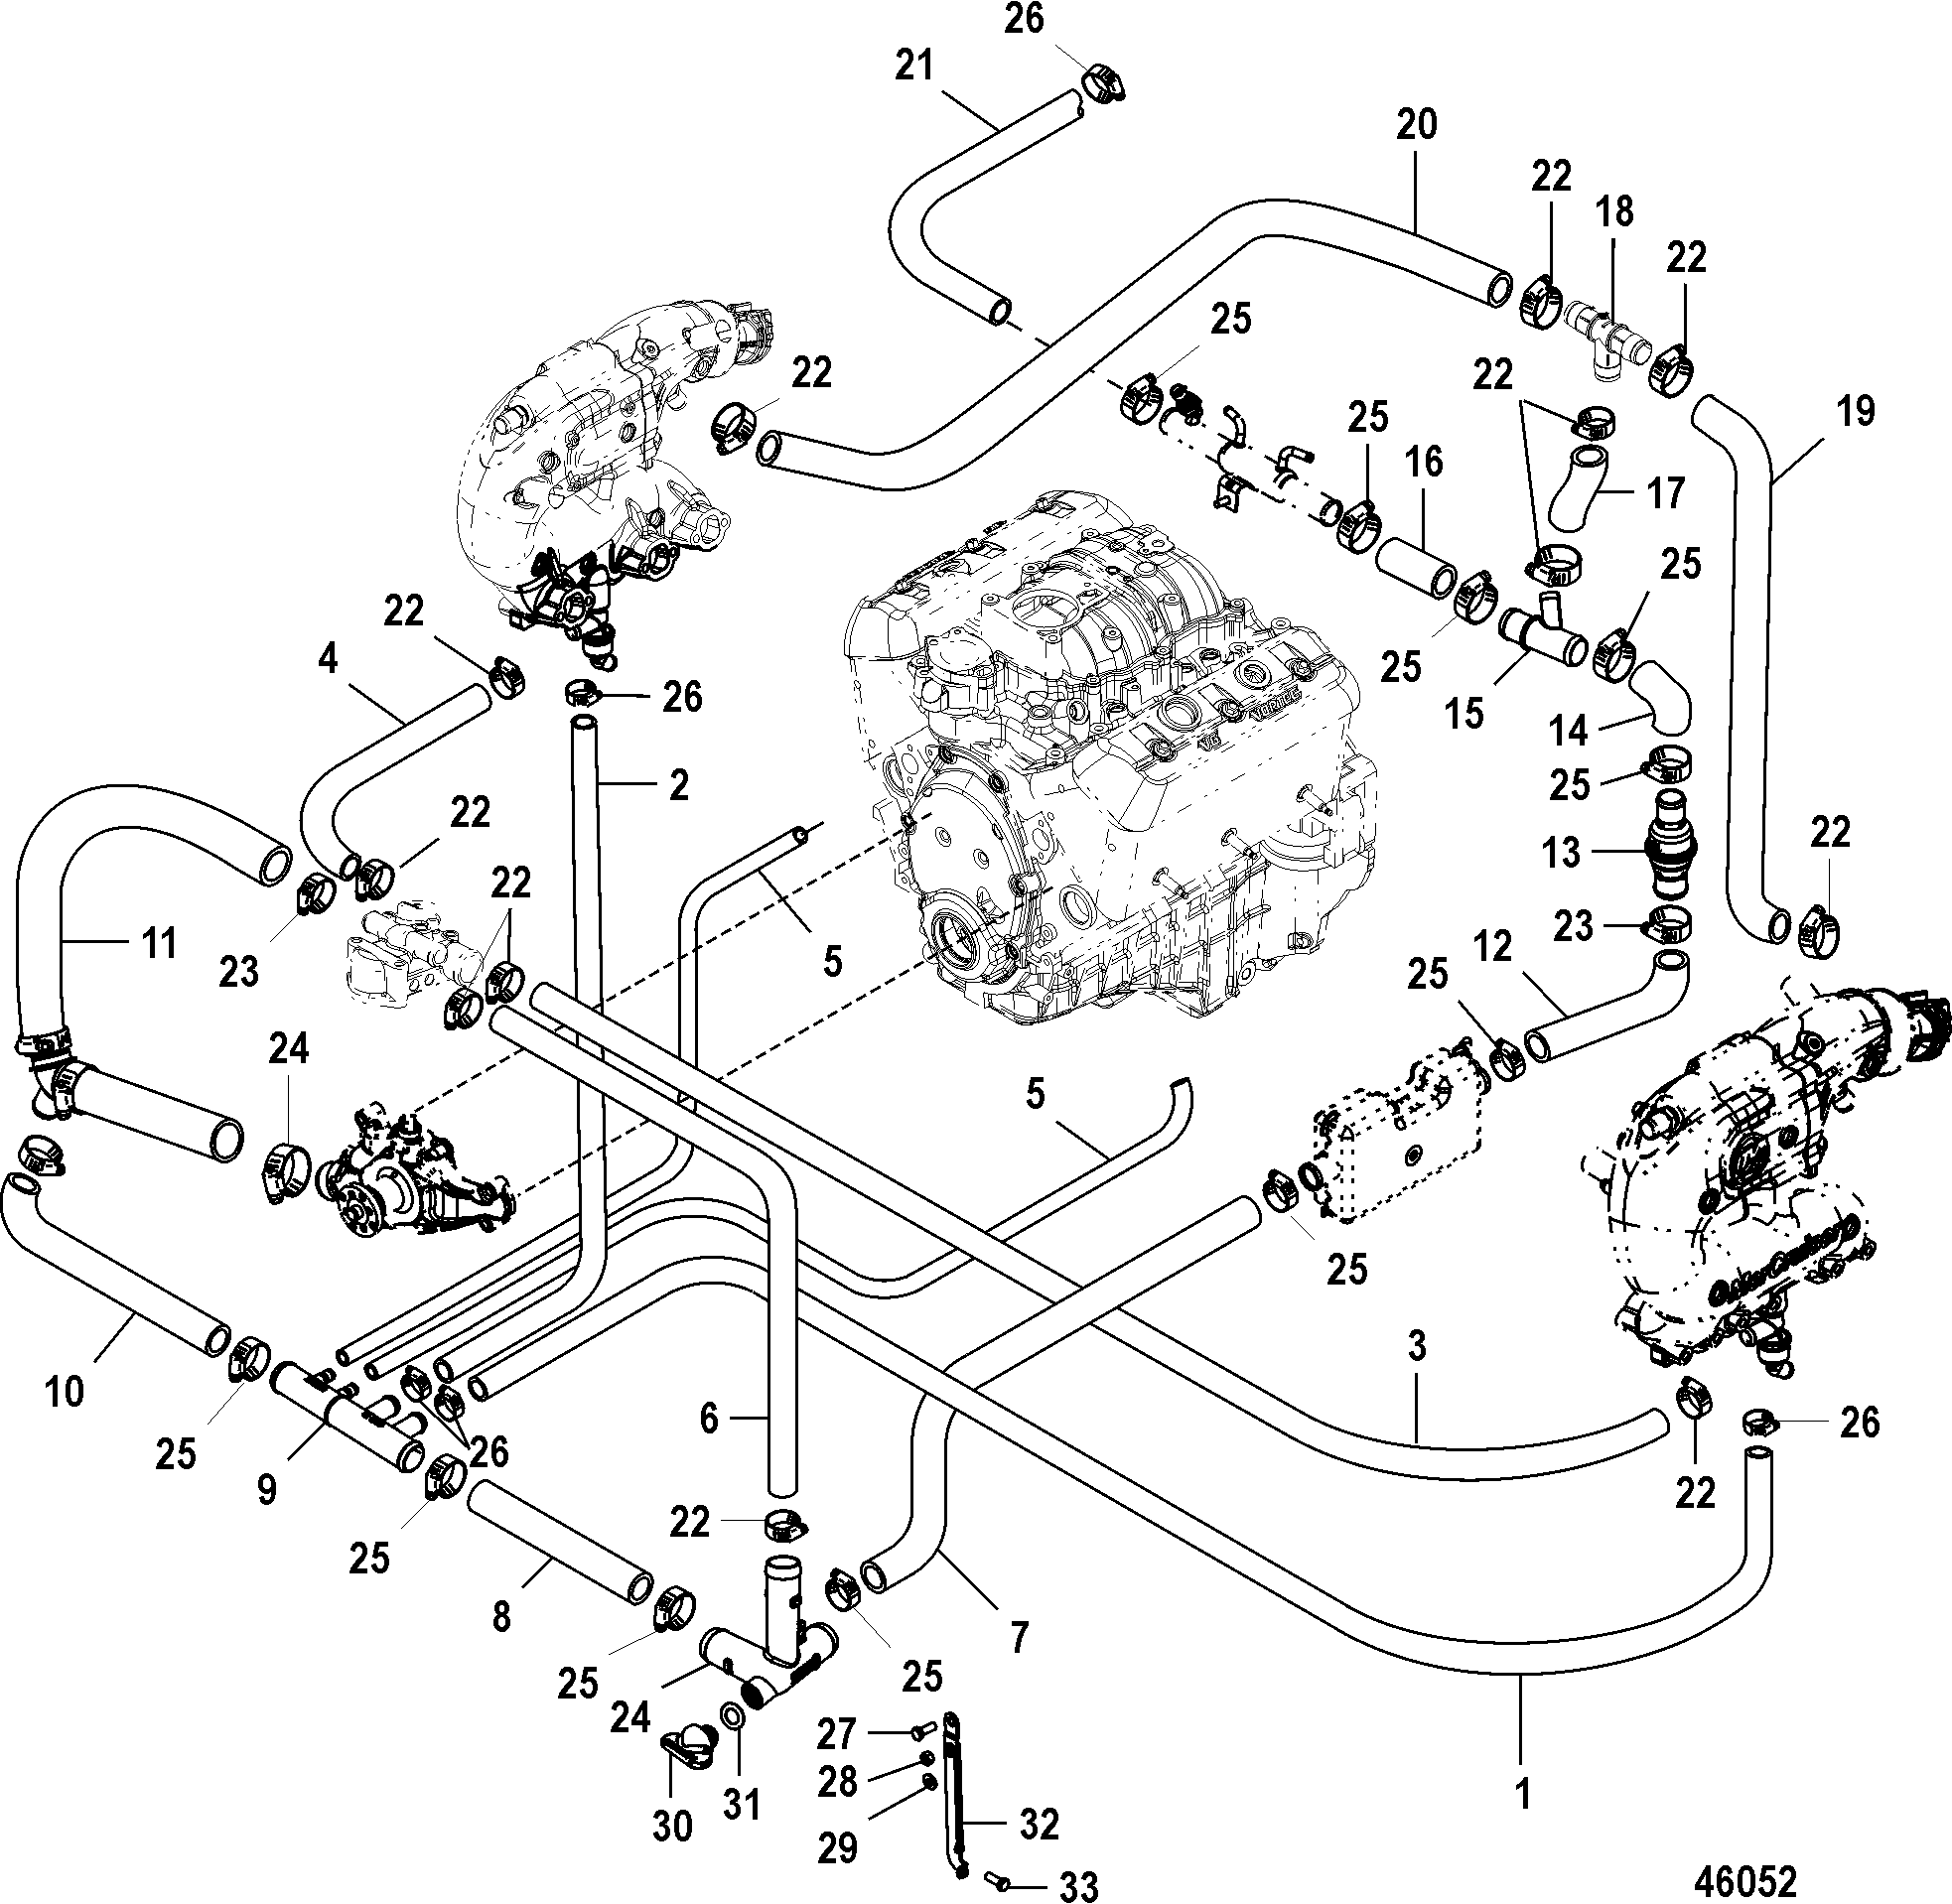 [WRG-1056] Ignition Wiring Diagram 1999 Mercruiser 4 3